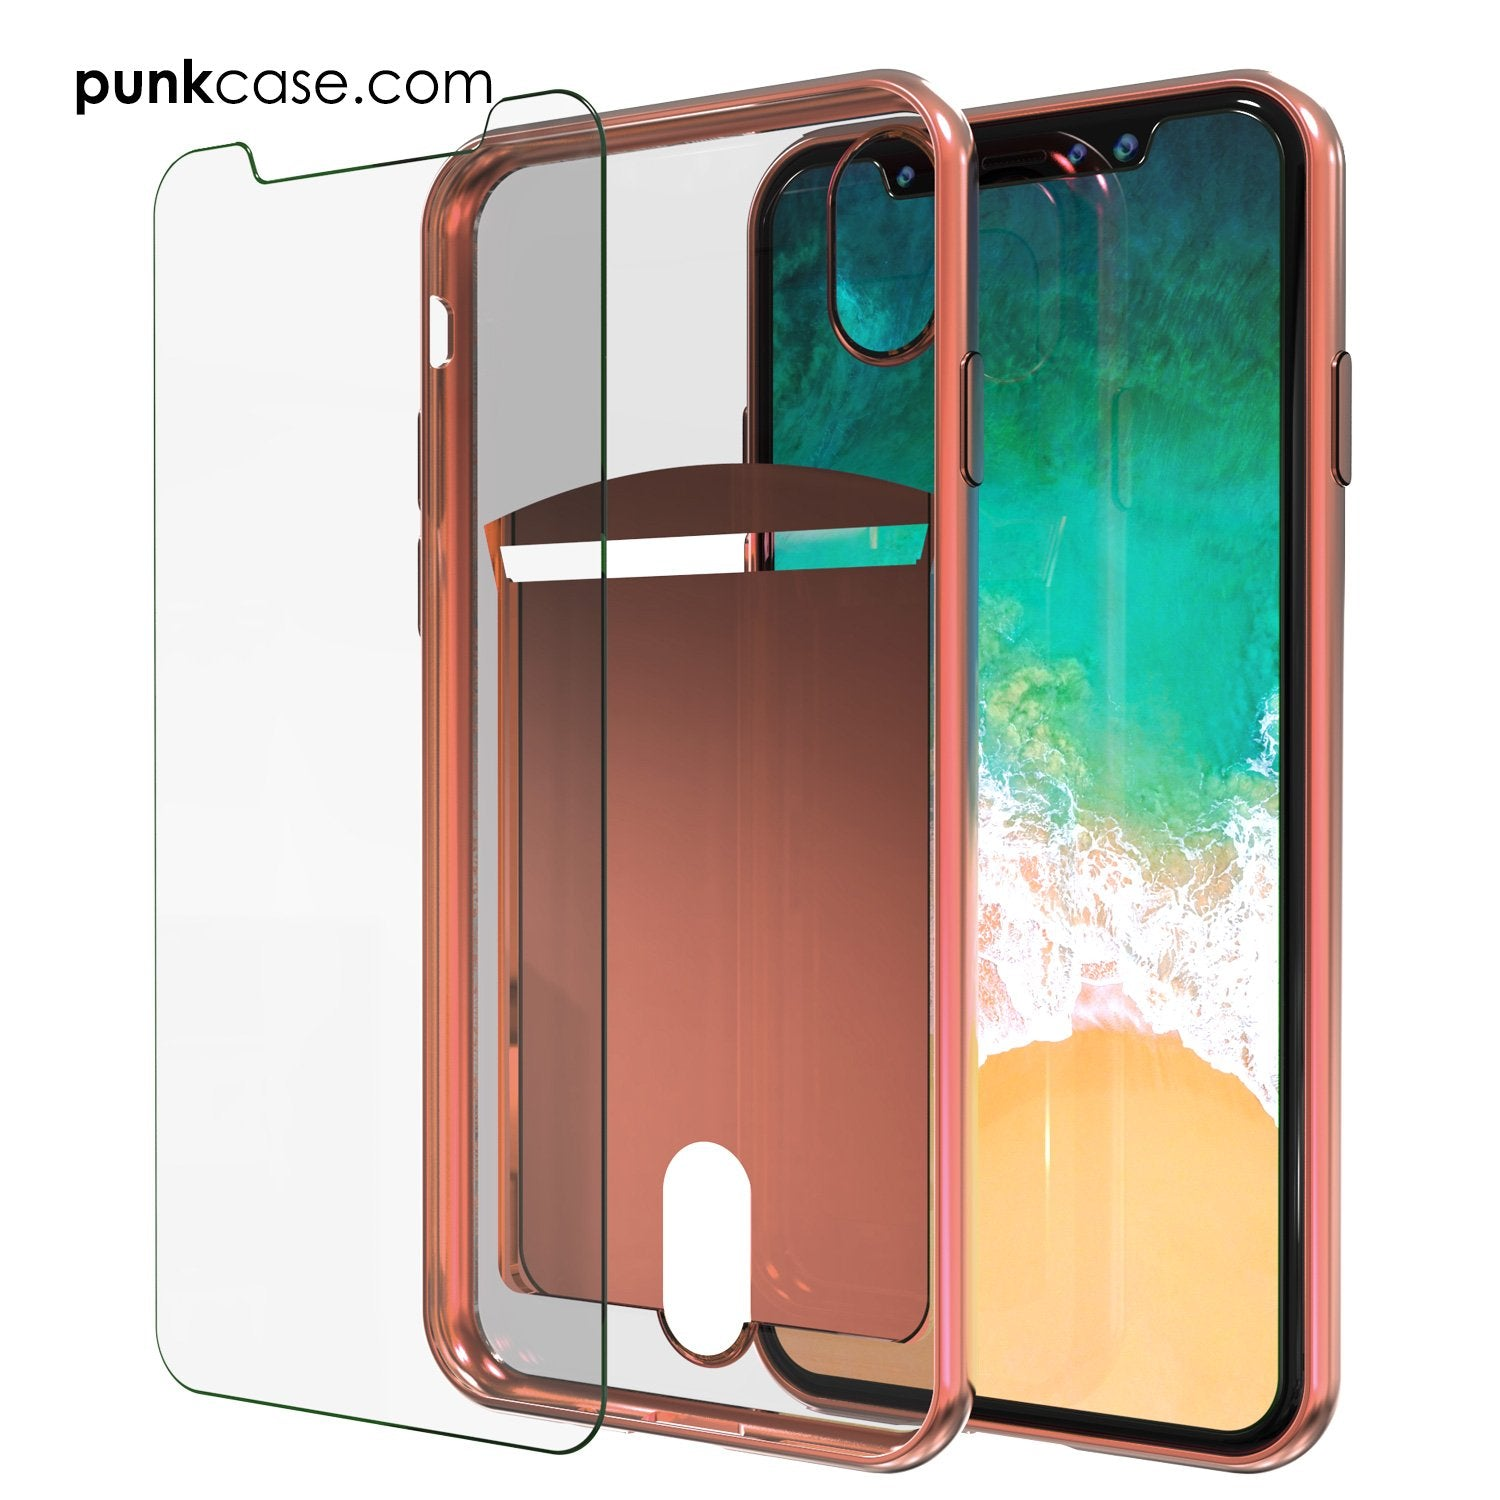 Punkcase iPhone X LUCID Series Dual Layer Armor Cover | Rose Pink